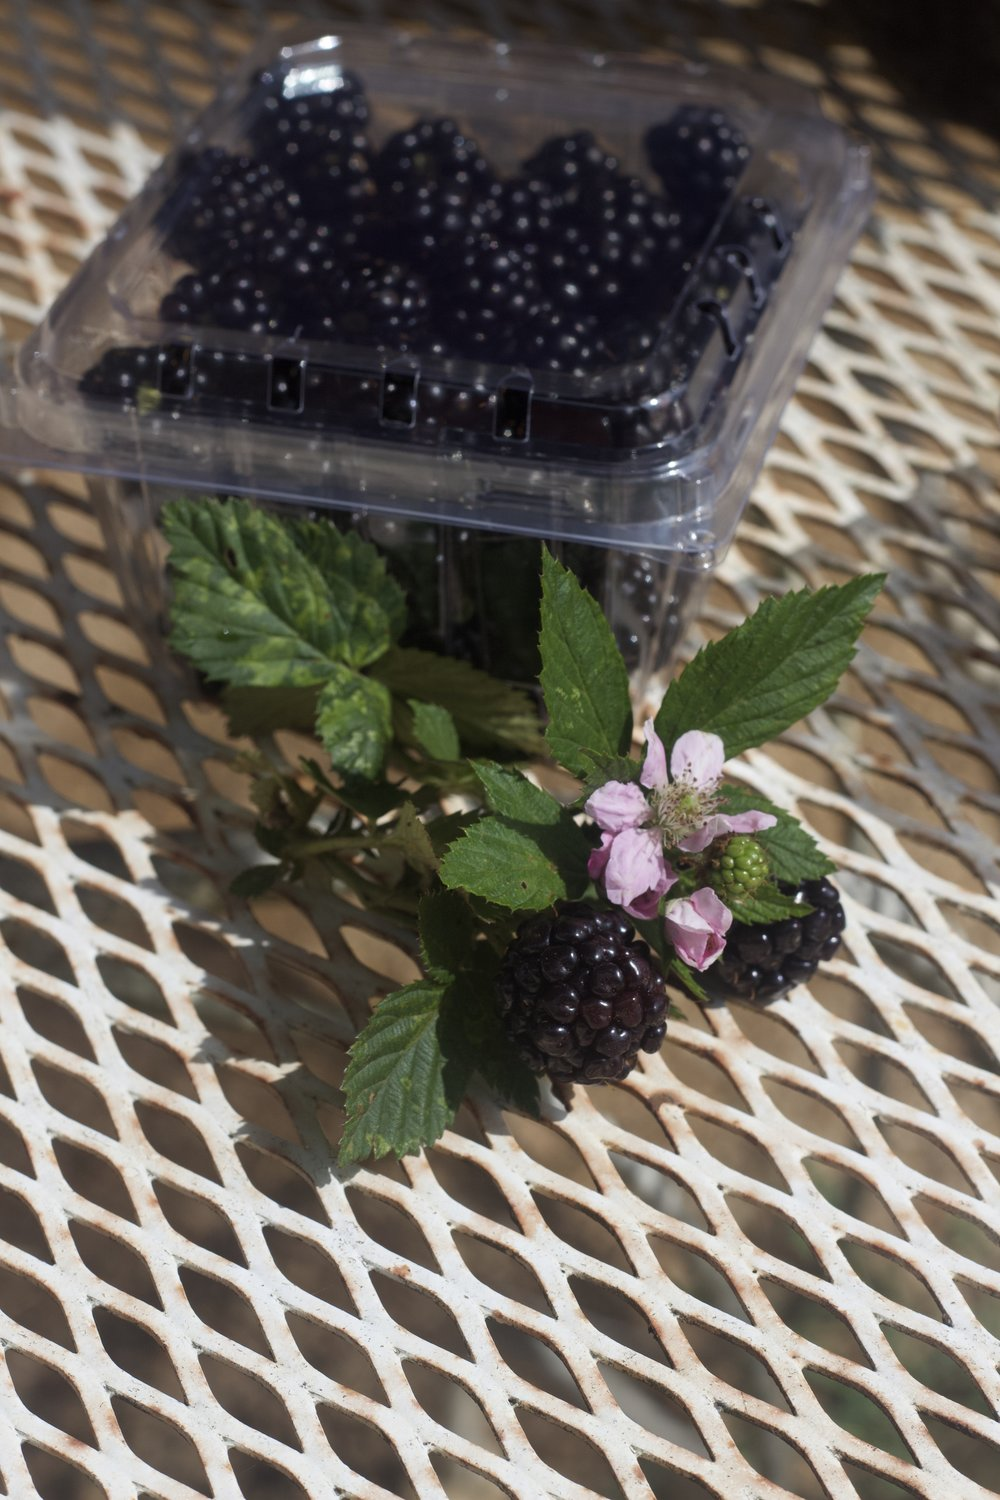 Blackberries | Pint clamshell $5